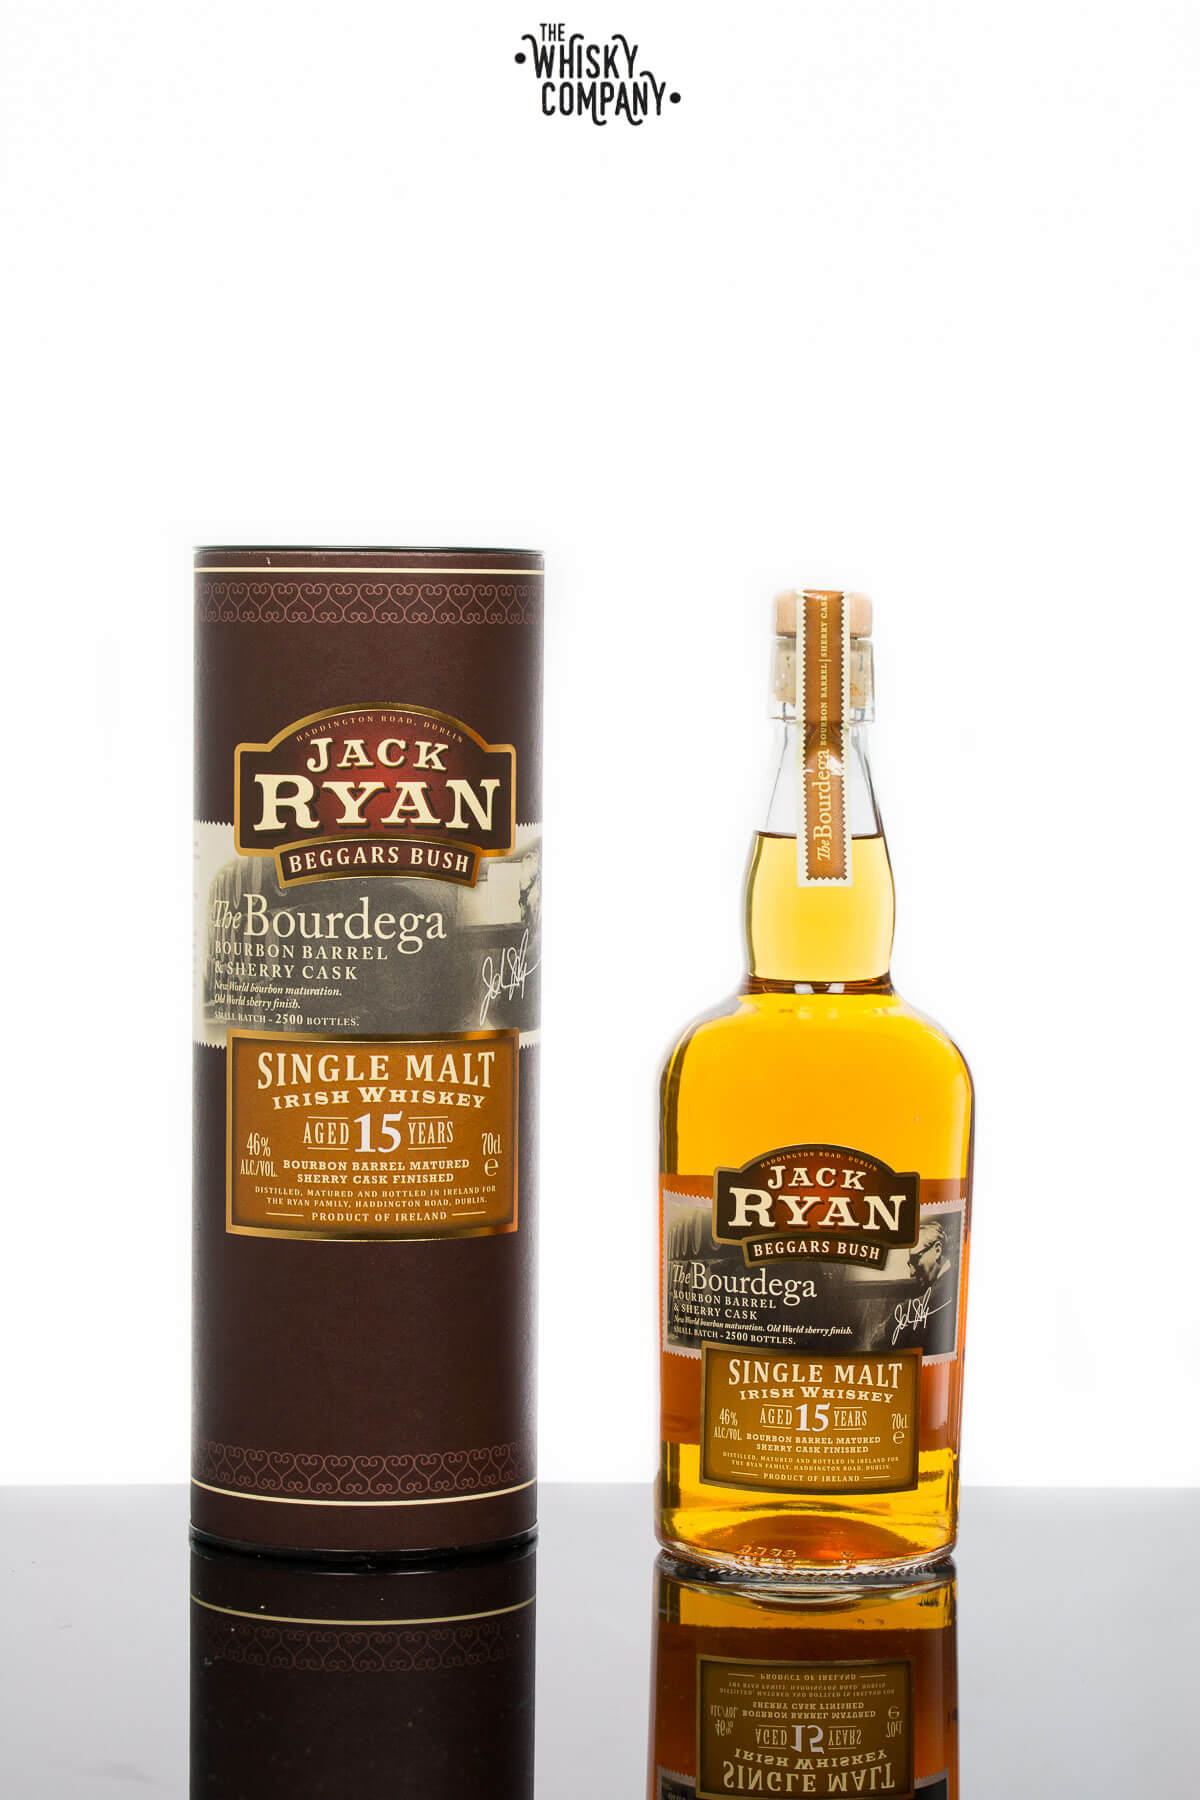 Jack Ryan 'Beggars Bush' Aged 15 Years 'The Bourdega' Irish Single Malt Whiskey (700ml)